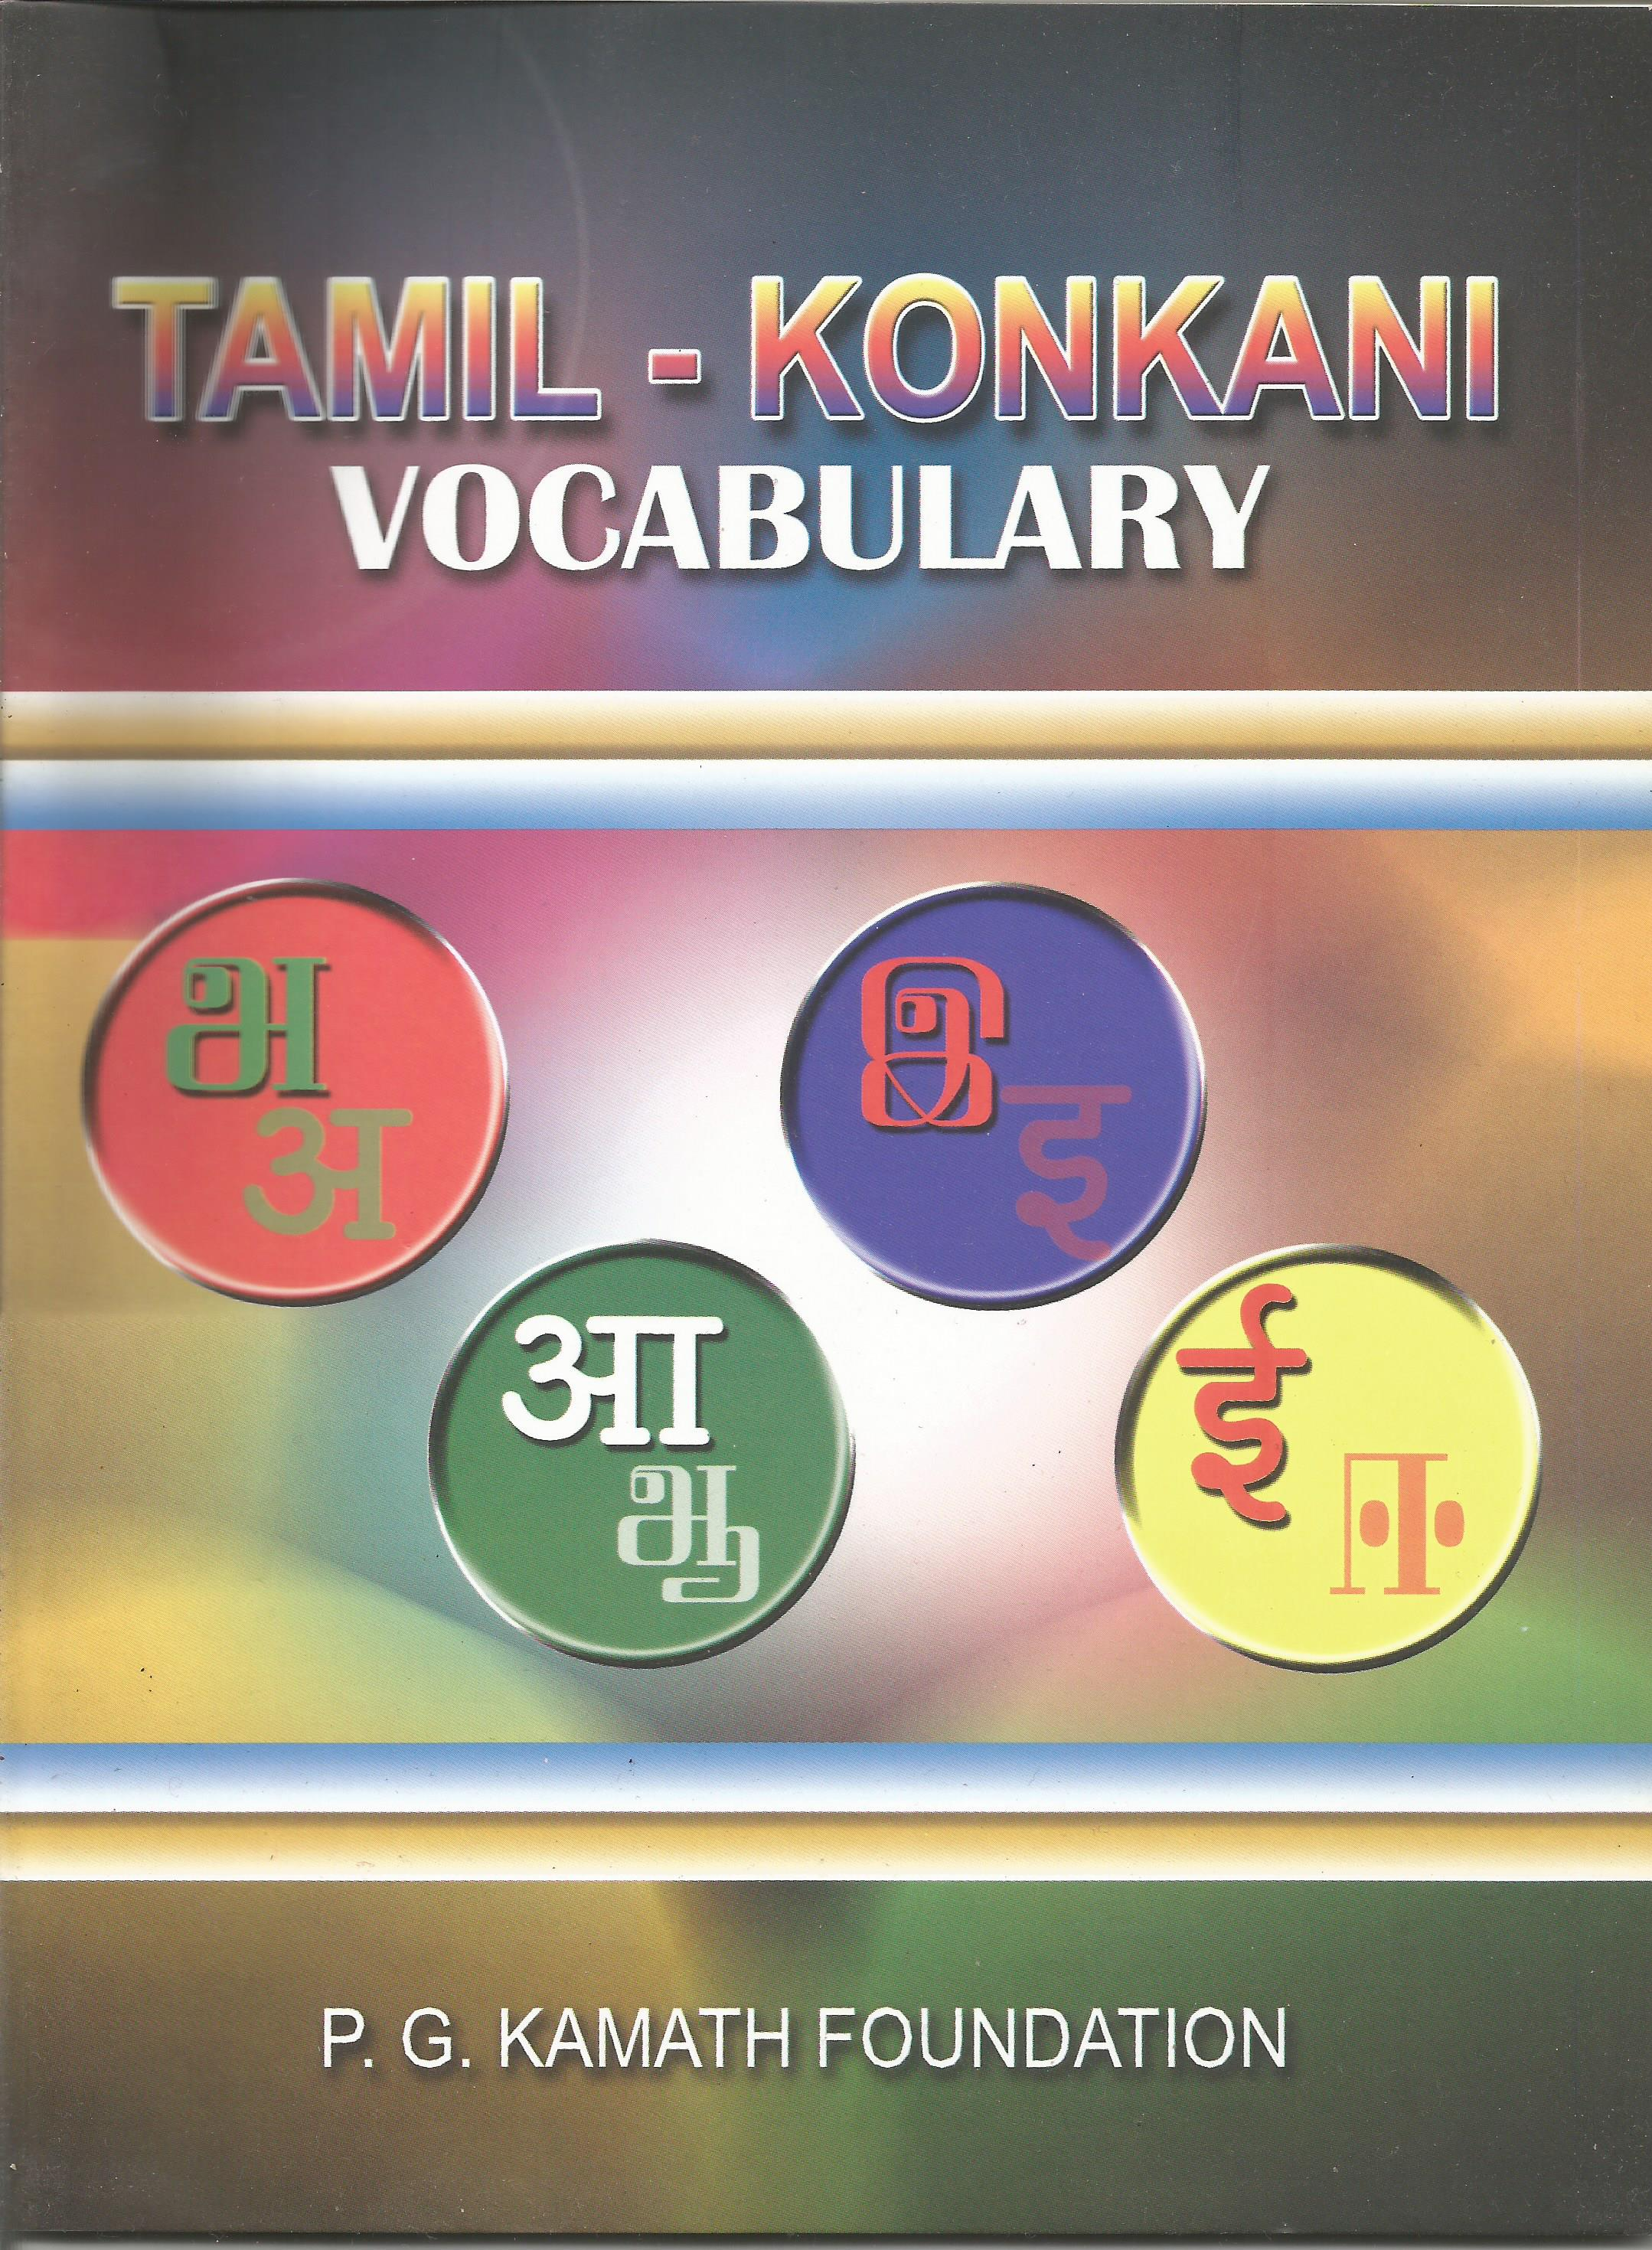 Tamil - Konkani Vocabulary